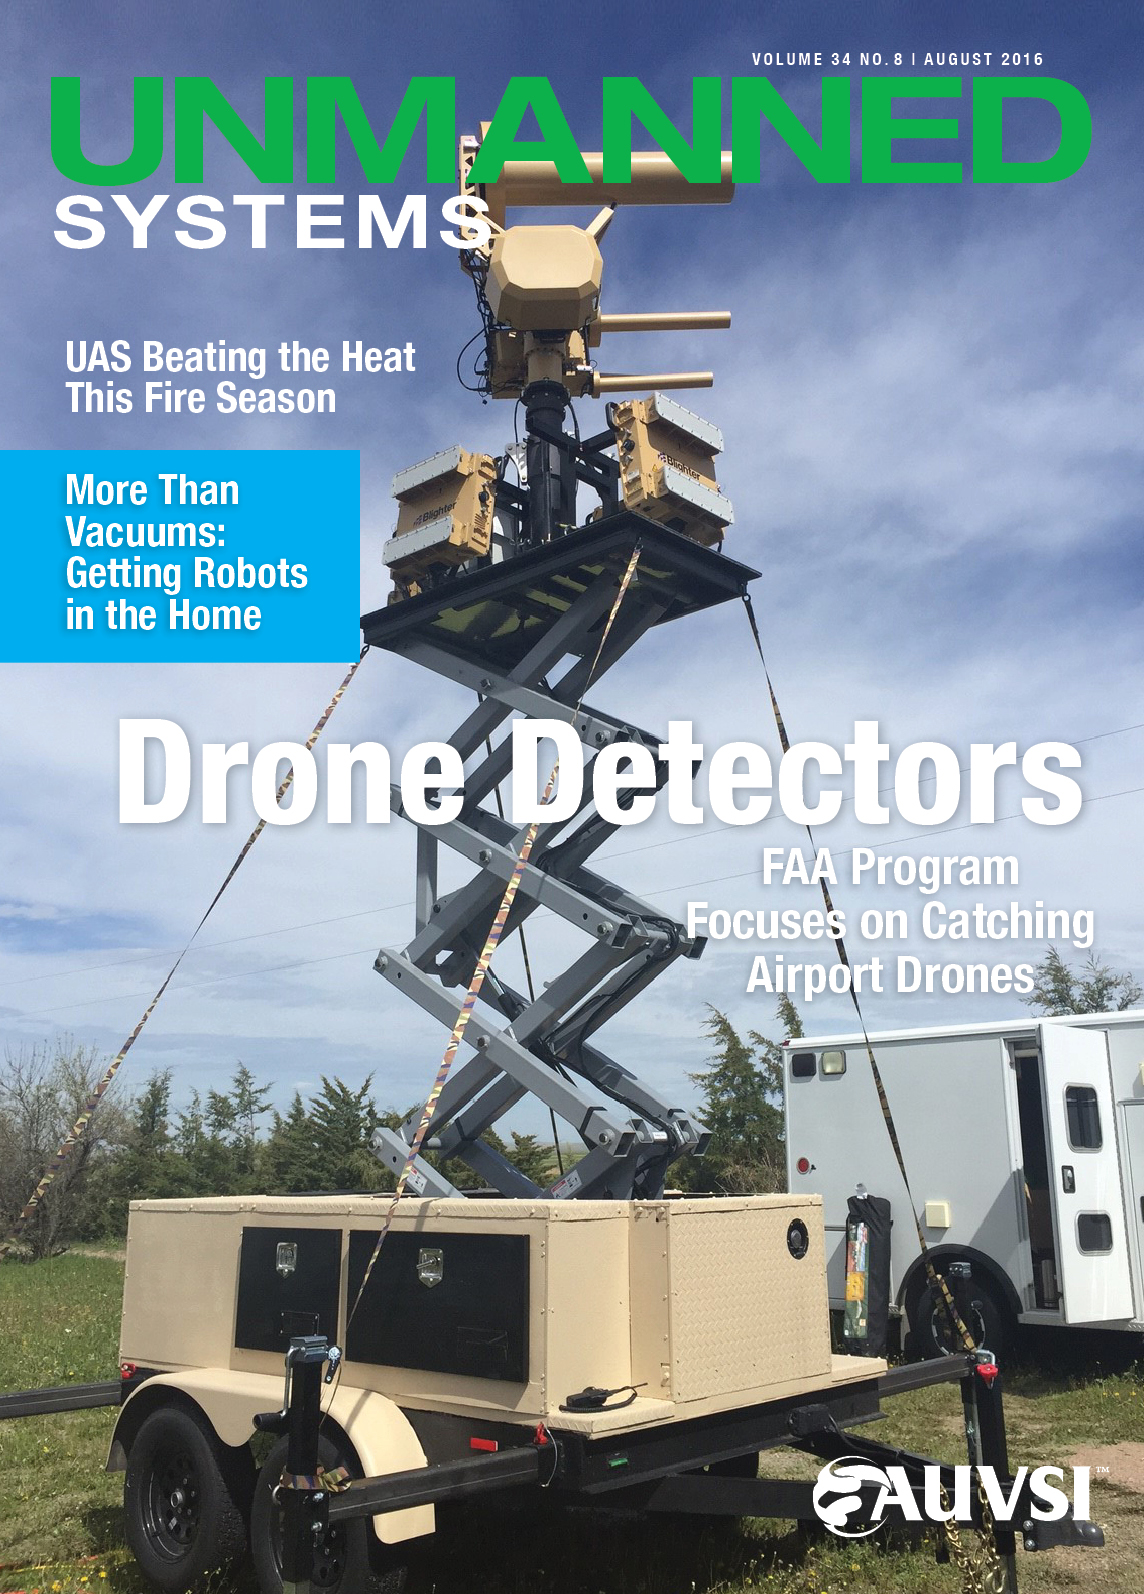 Unmanned Systems Magazine - August